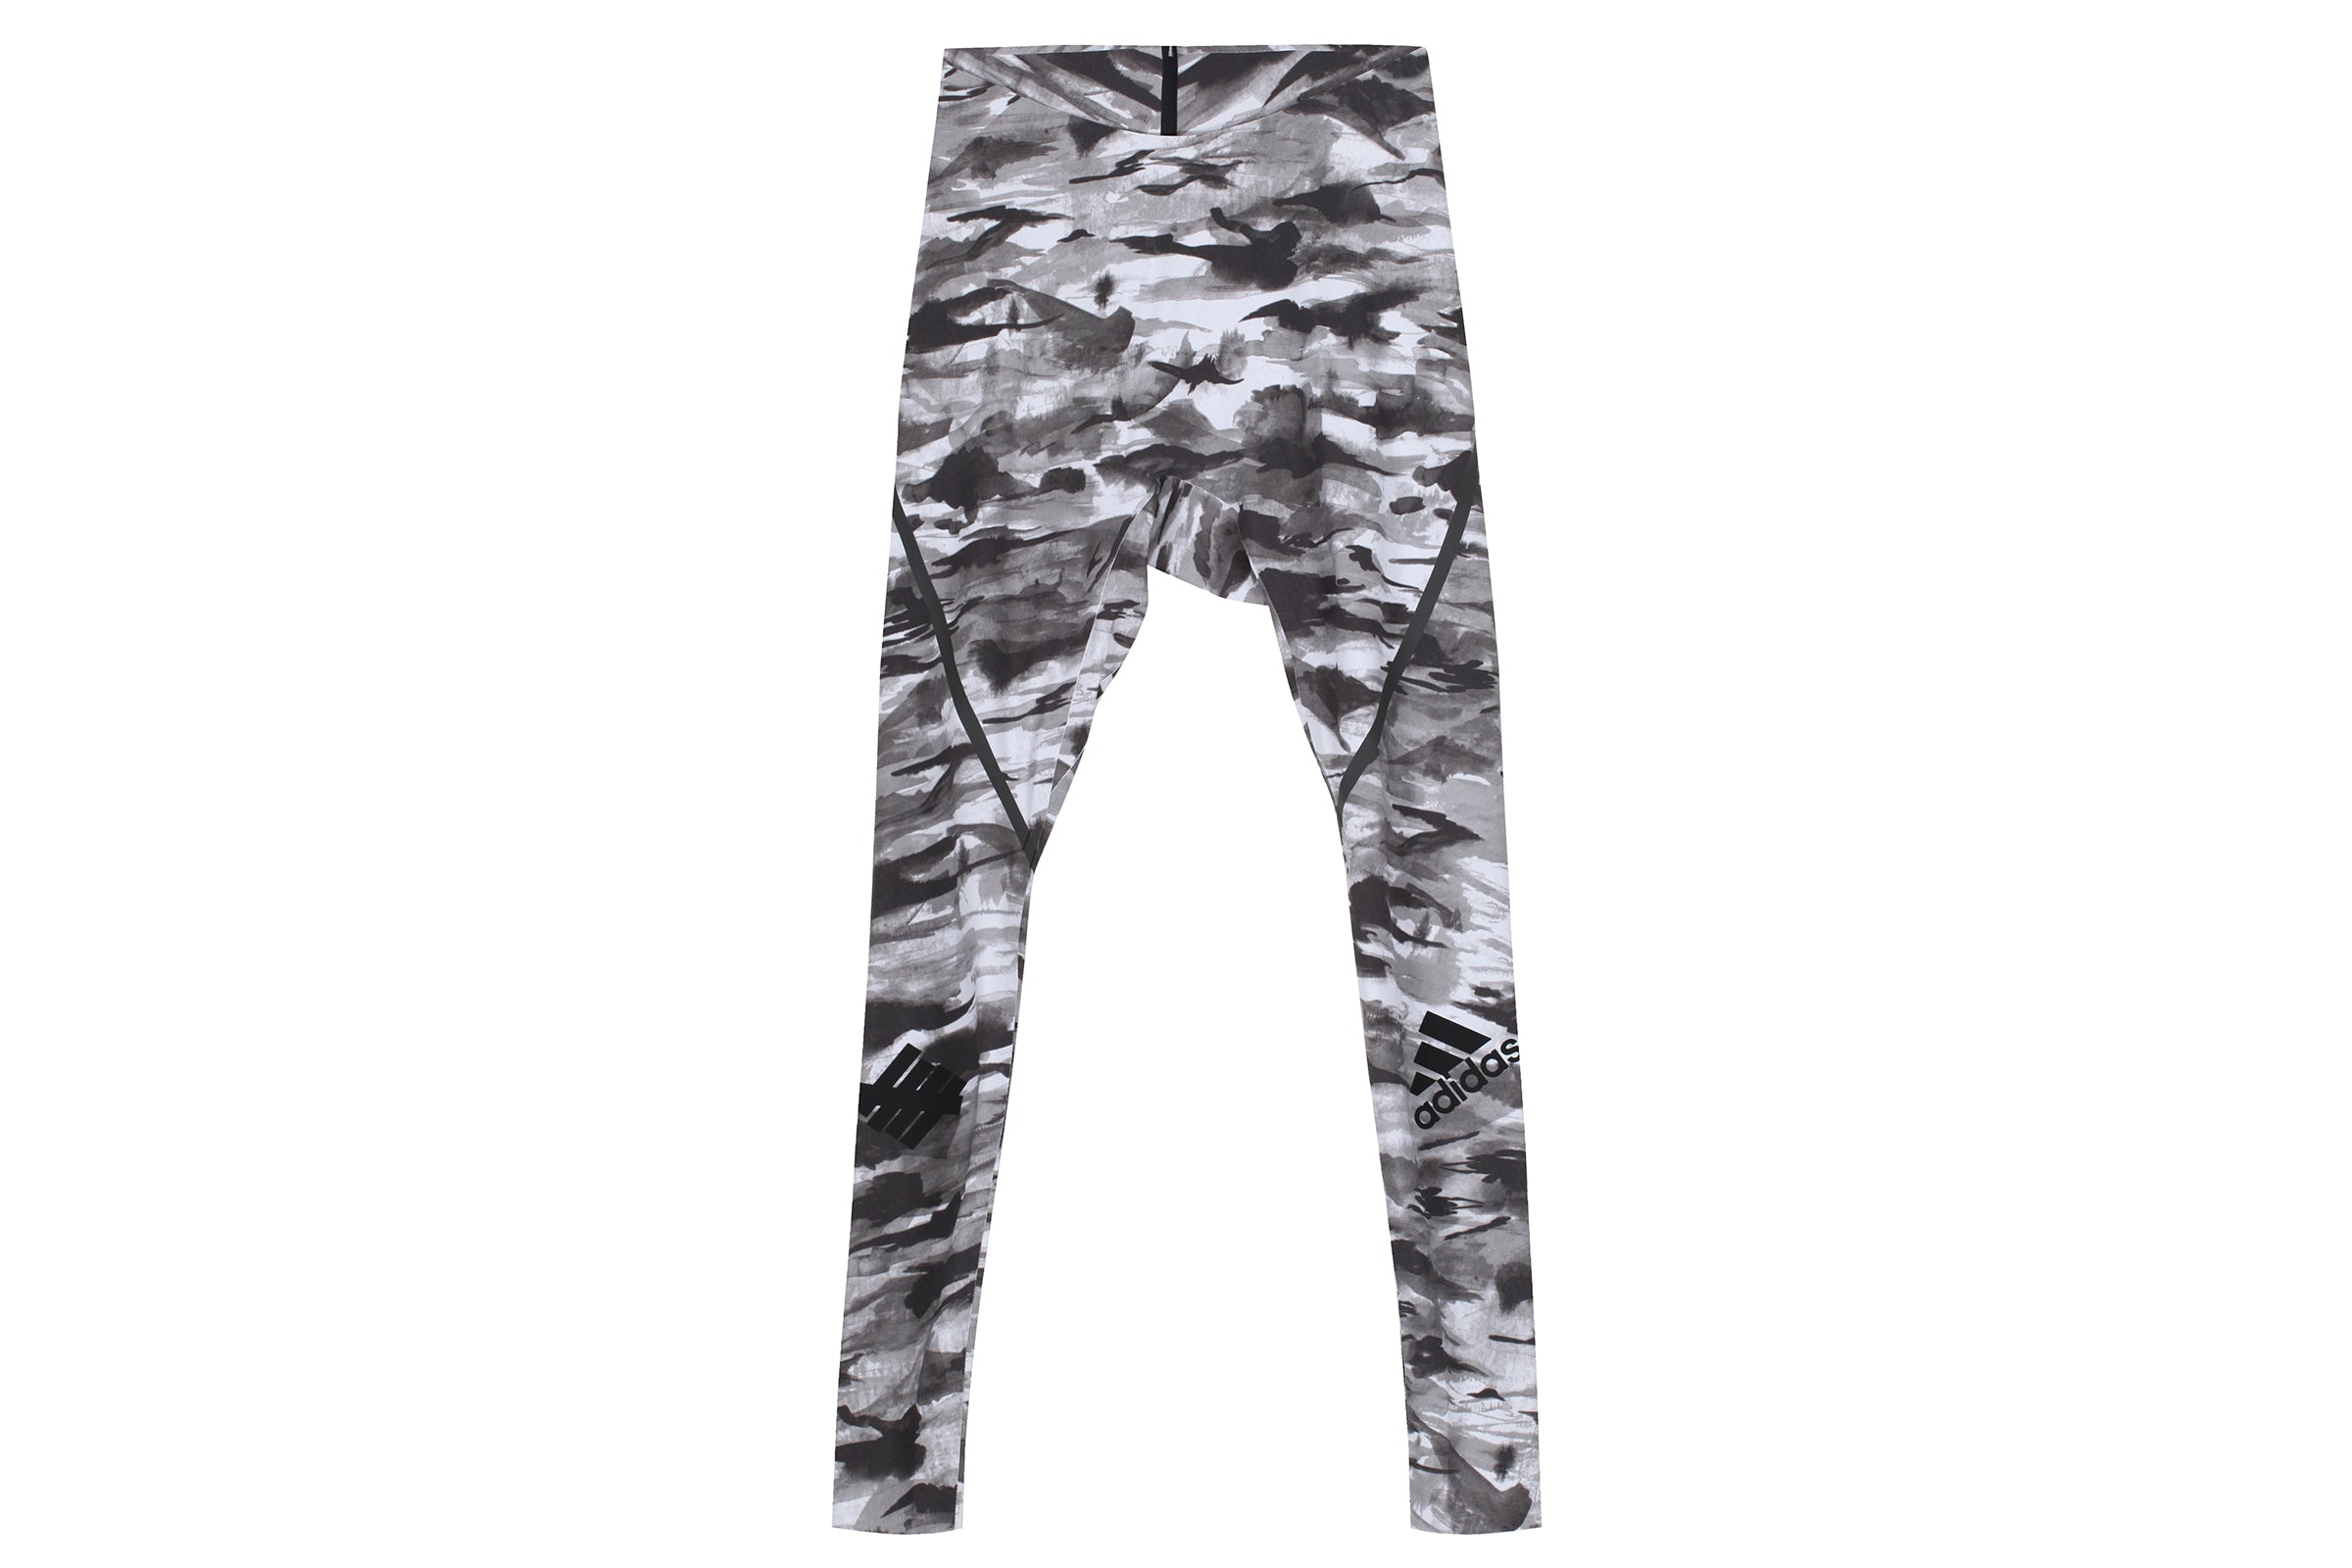 Adidas ASK 360 Tech Pant 11 x Undefeated